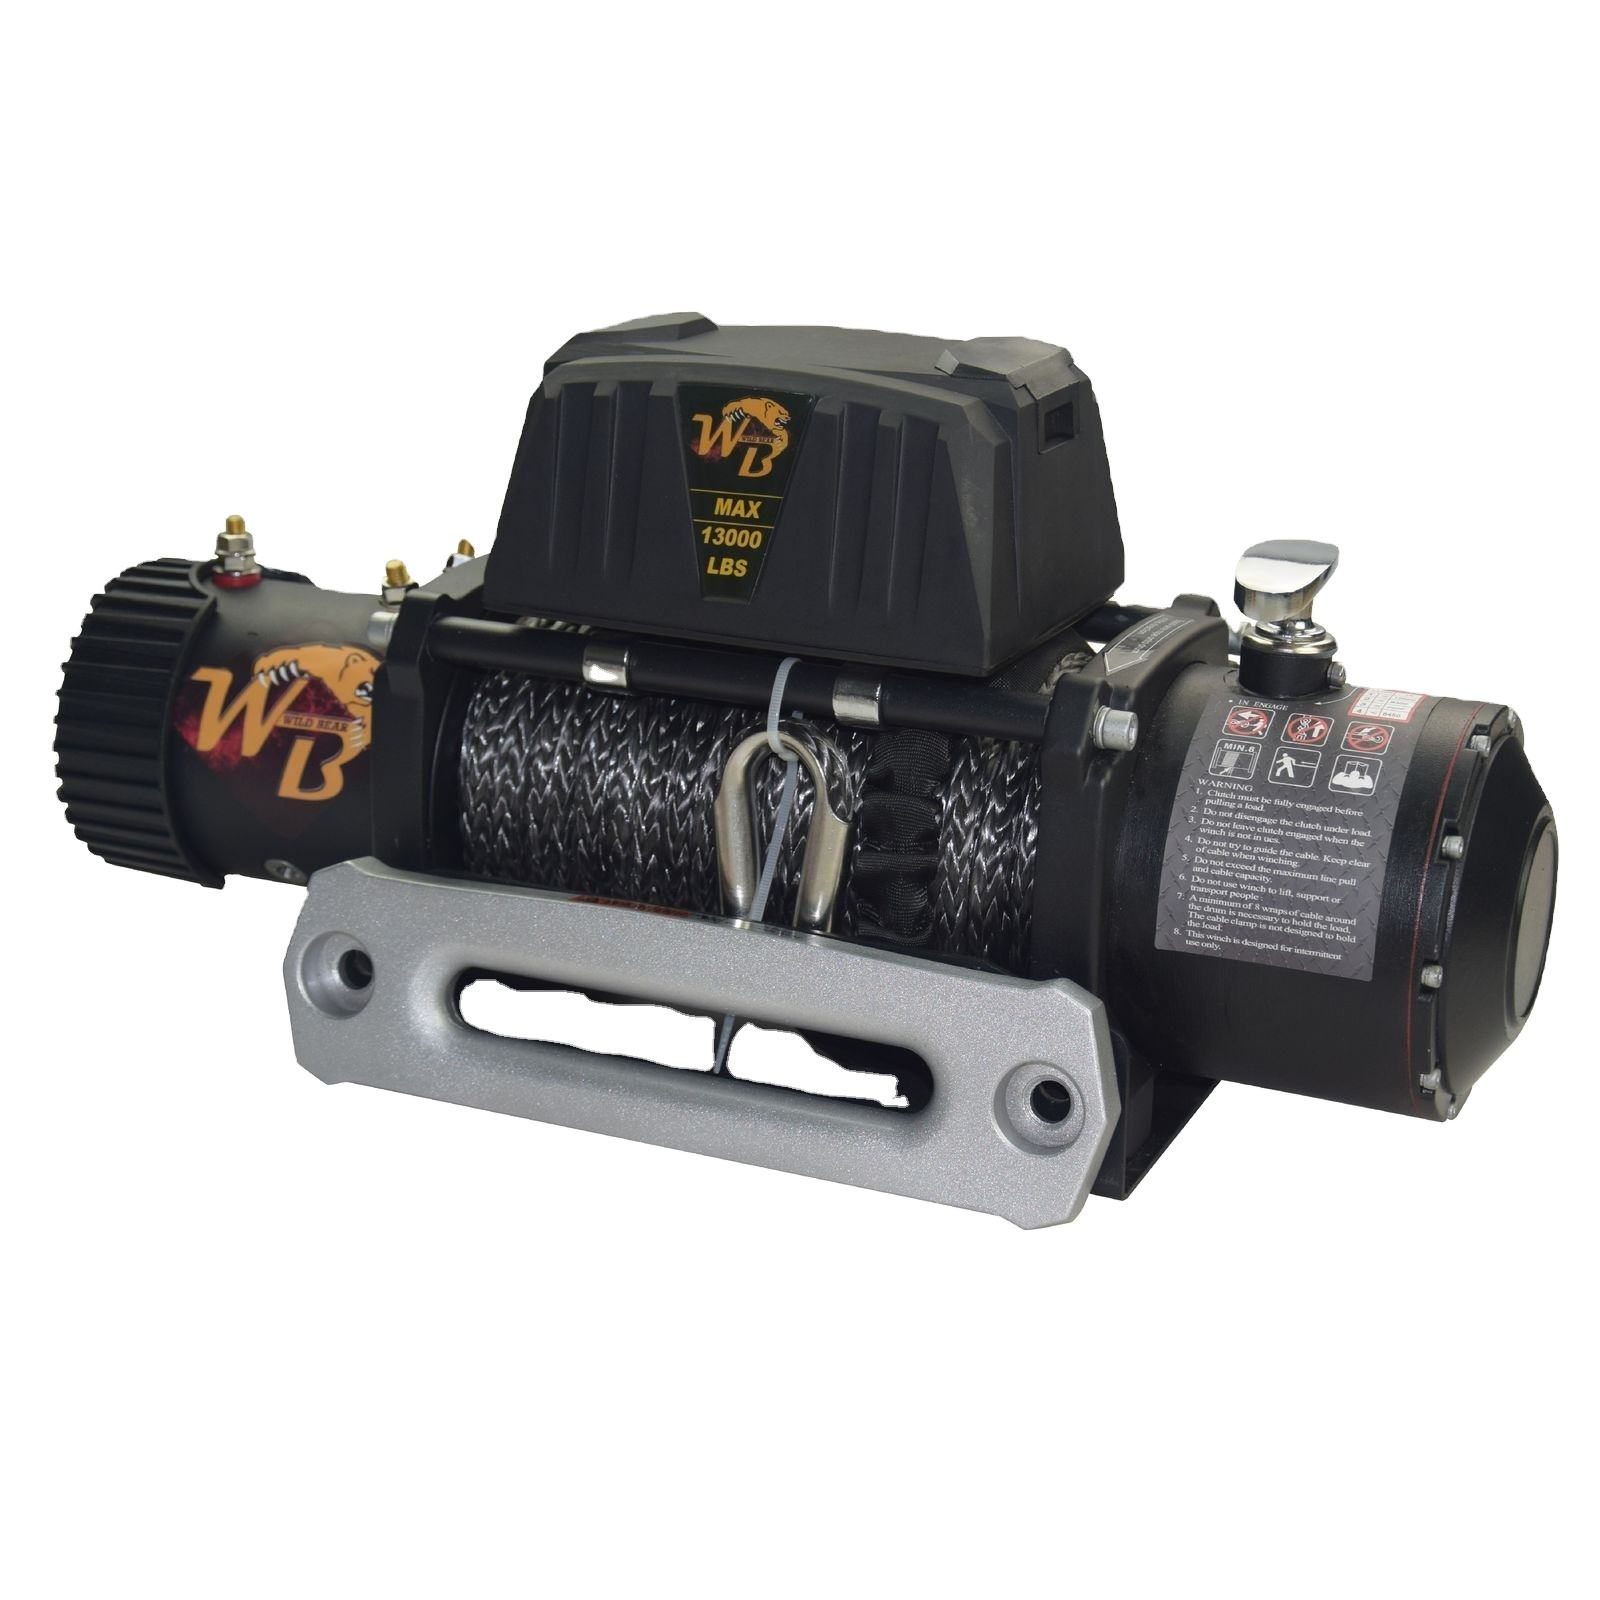 13000lbs winch(5897kg) Capacity Heavy-duty 4WD electric winch 12v for 4x4